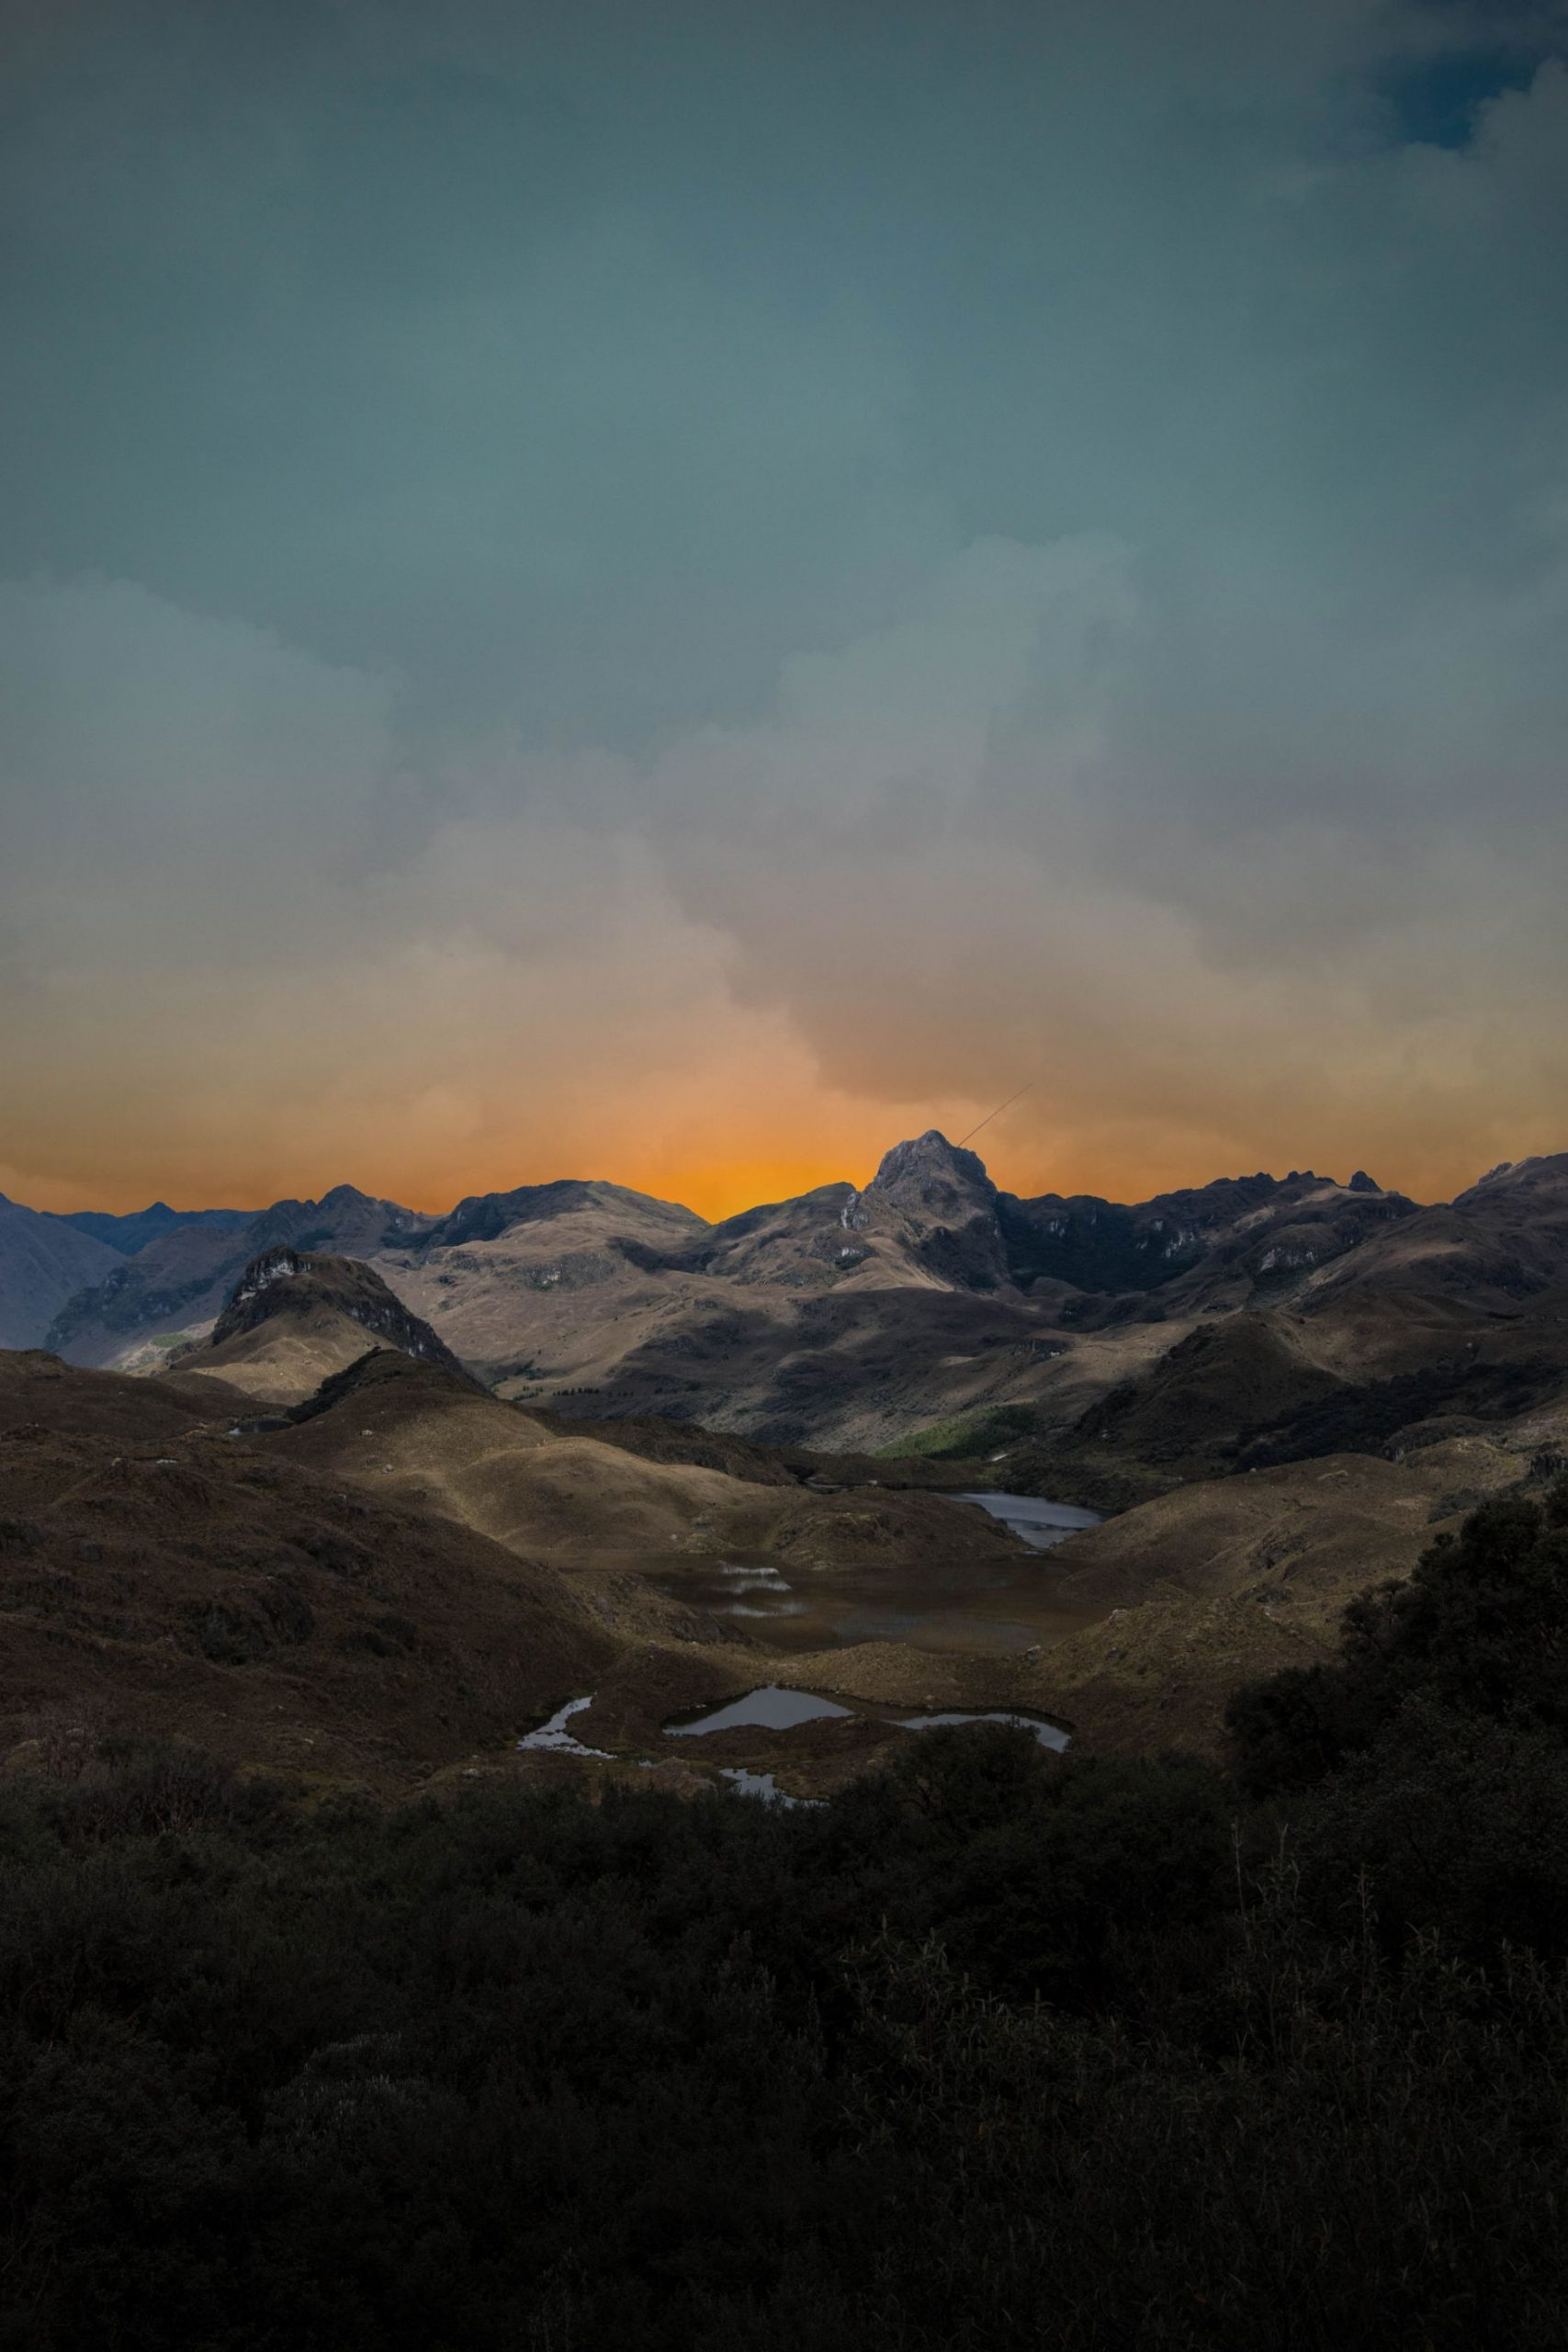 sunset over the mountains in Cajas National Park in Ecuador